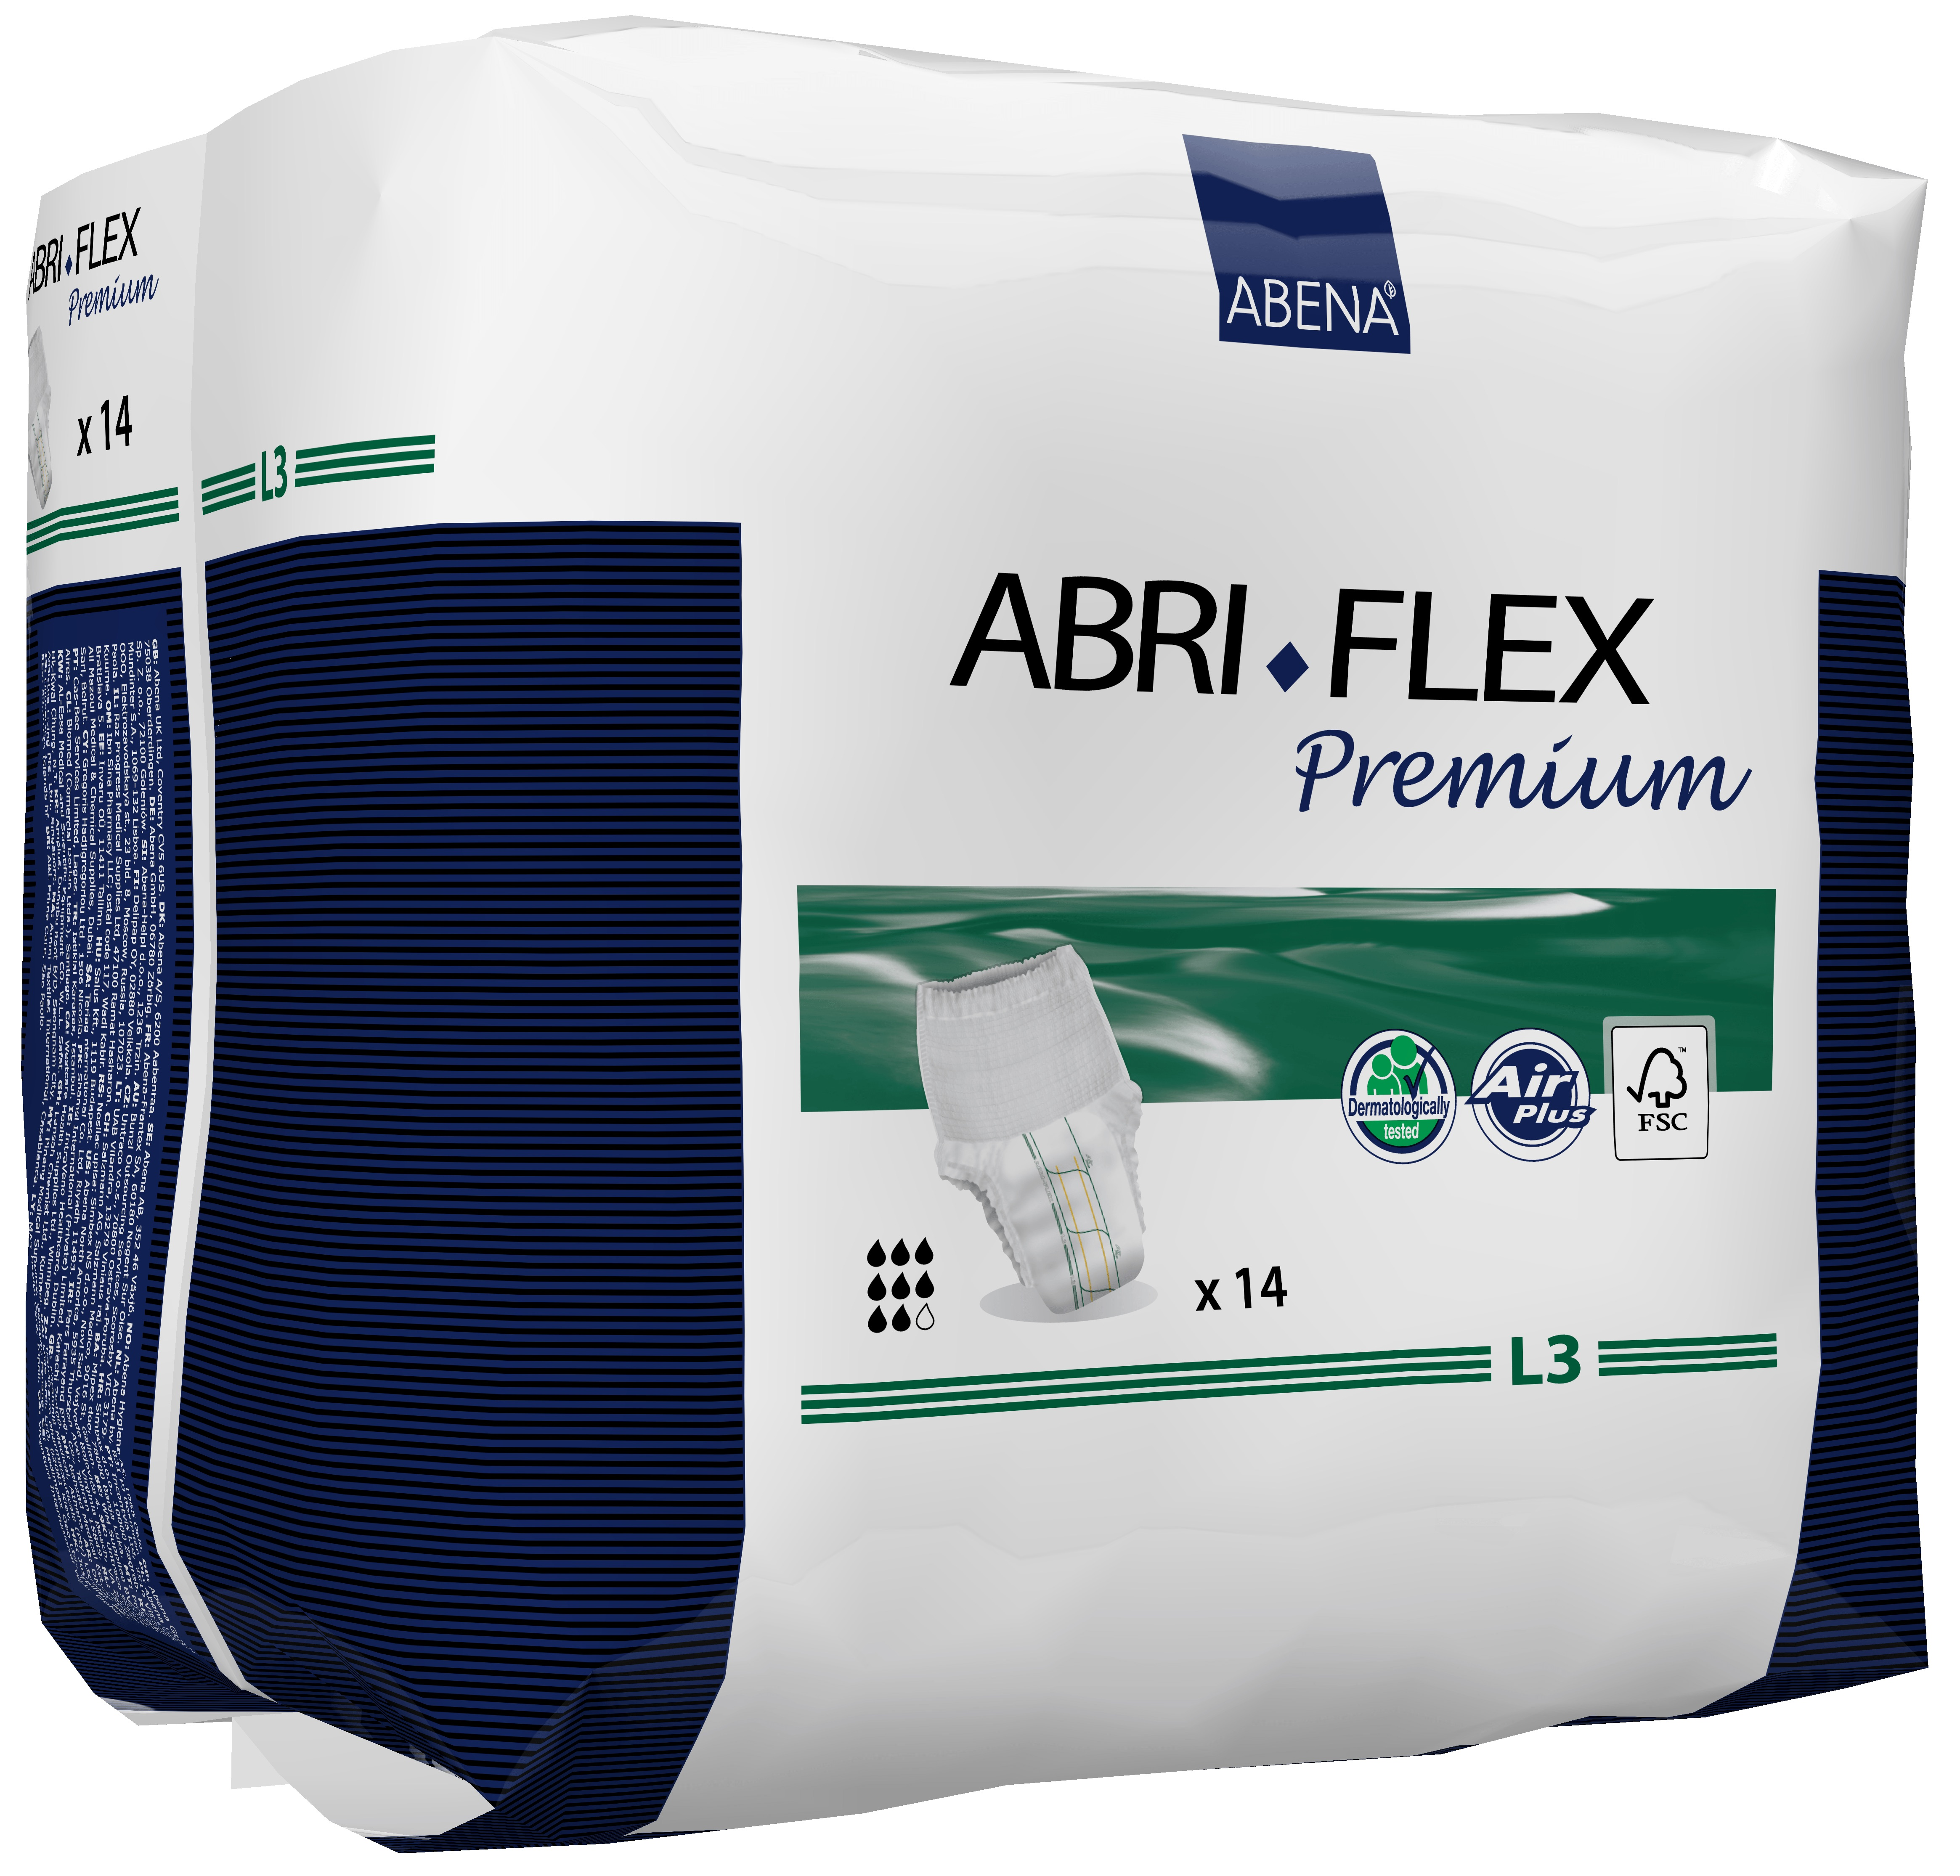 Abena Abri-Flex Premium Protective Underwear, M3, 84 Count (6 Packs of 14)